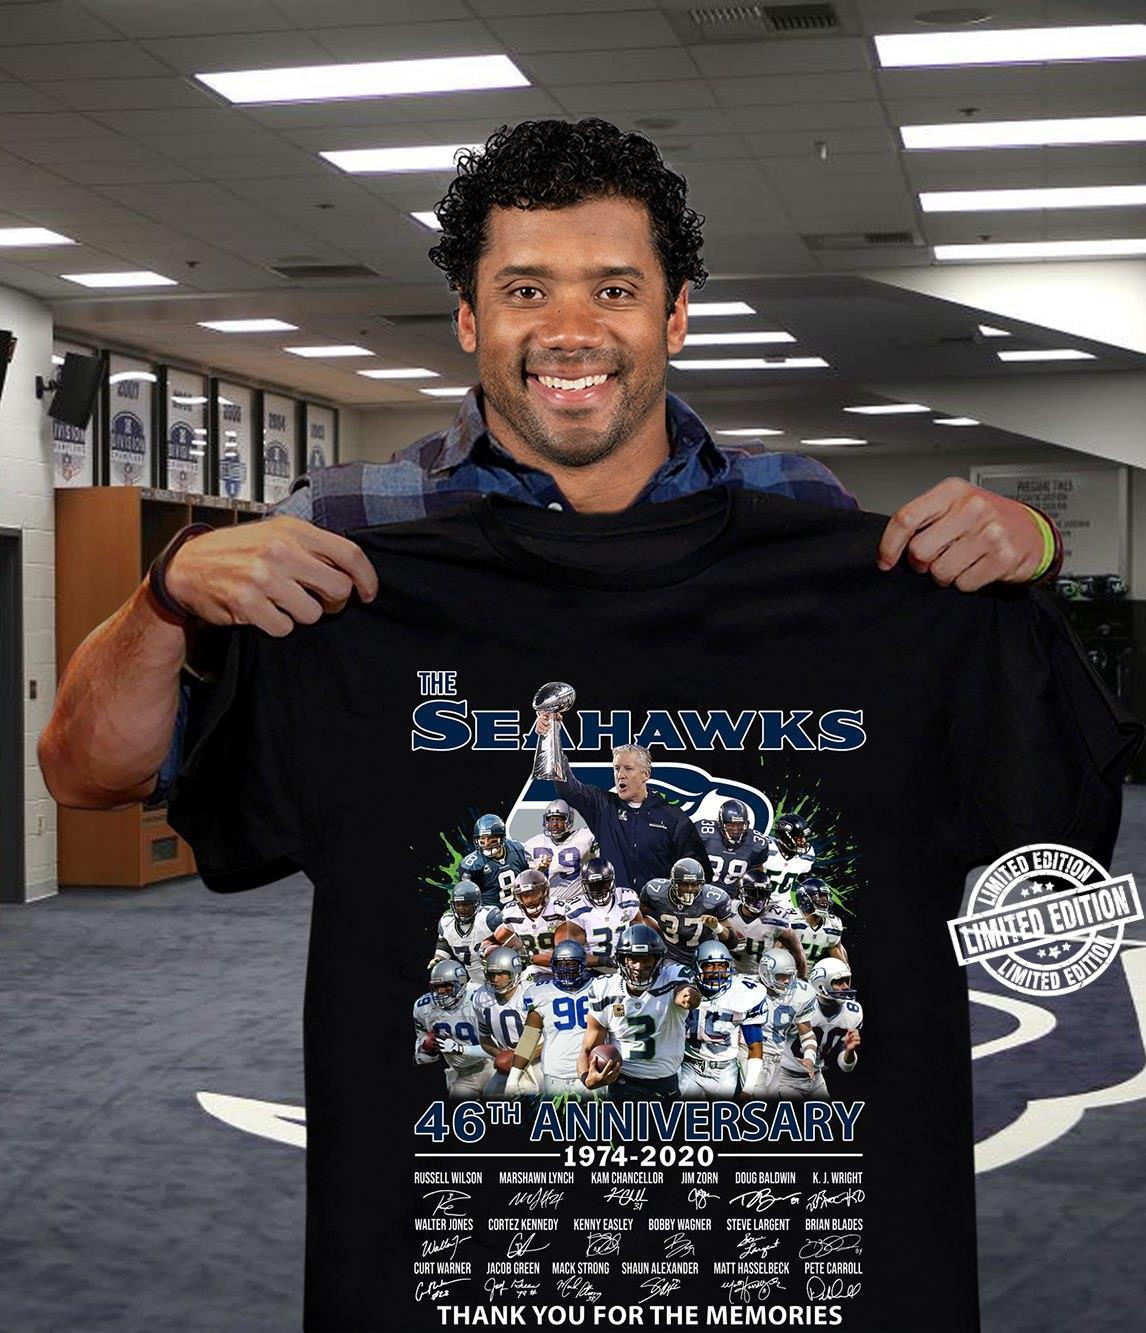 The Seahawks 46th anniversary 1974-2020 thank you for the memories shirt